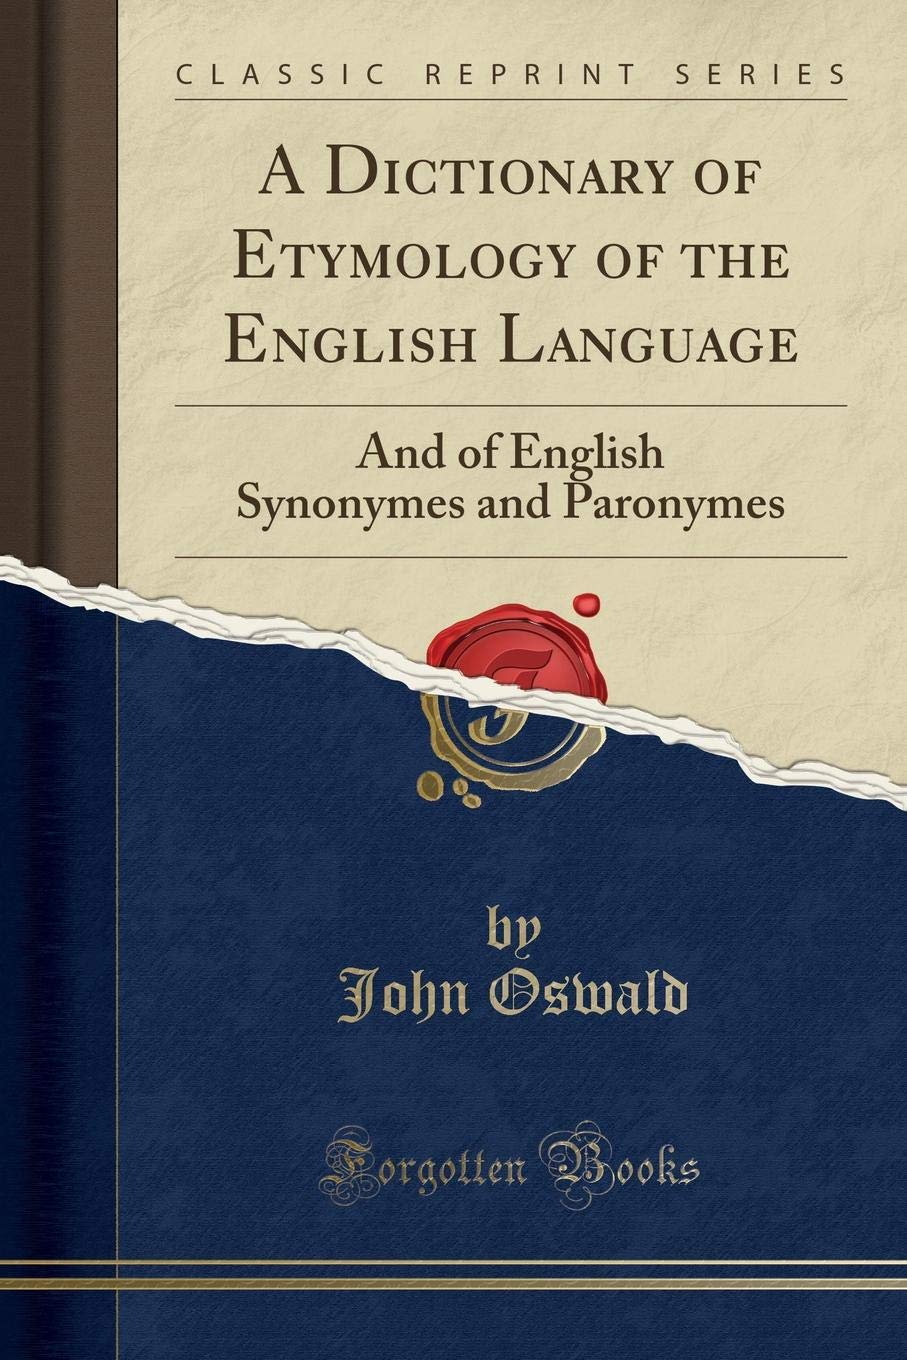 A Dictionary of Etymology of the English Language: And of English Synonymes and Paronymes (Classic Reprint) Paperback – April 18, 2018 John Oswald Forgotten Books 1332780849 HISTORY / General